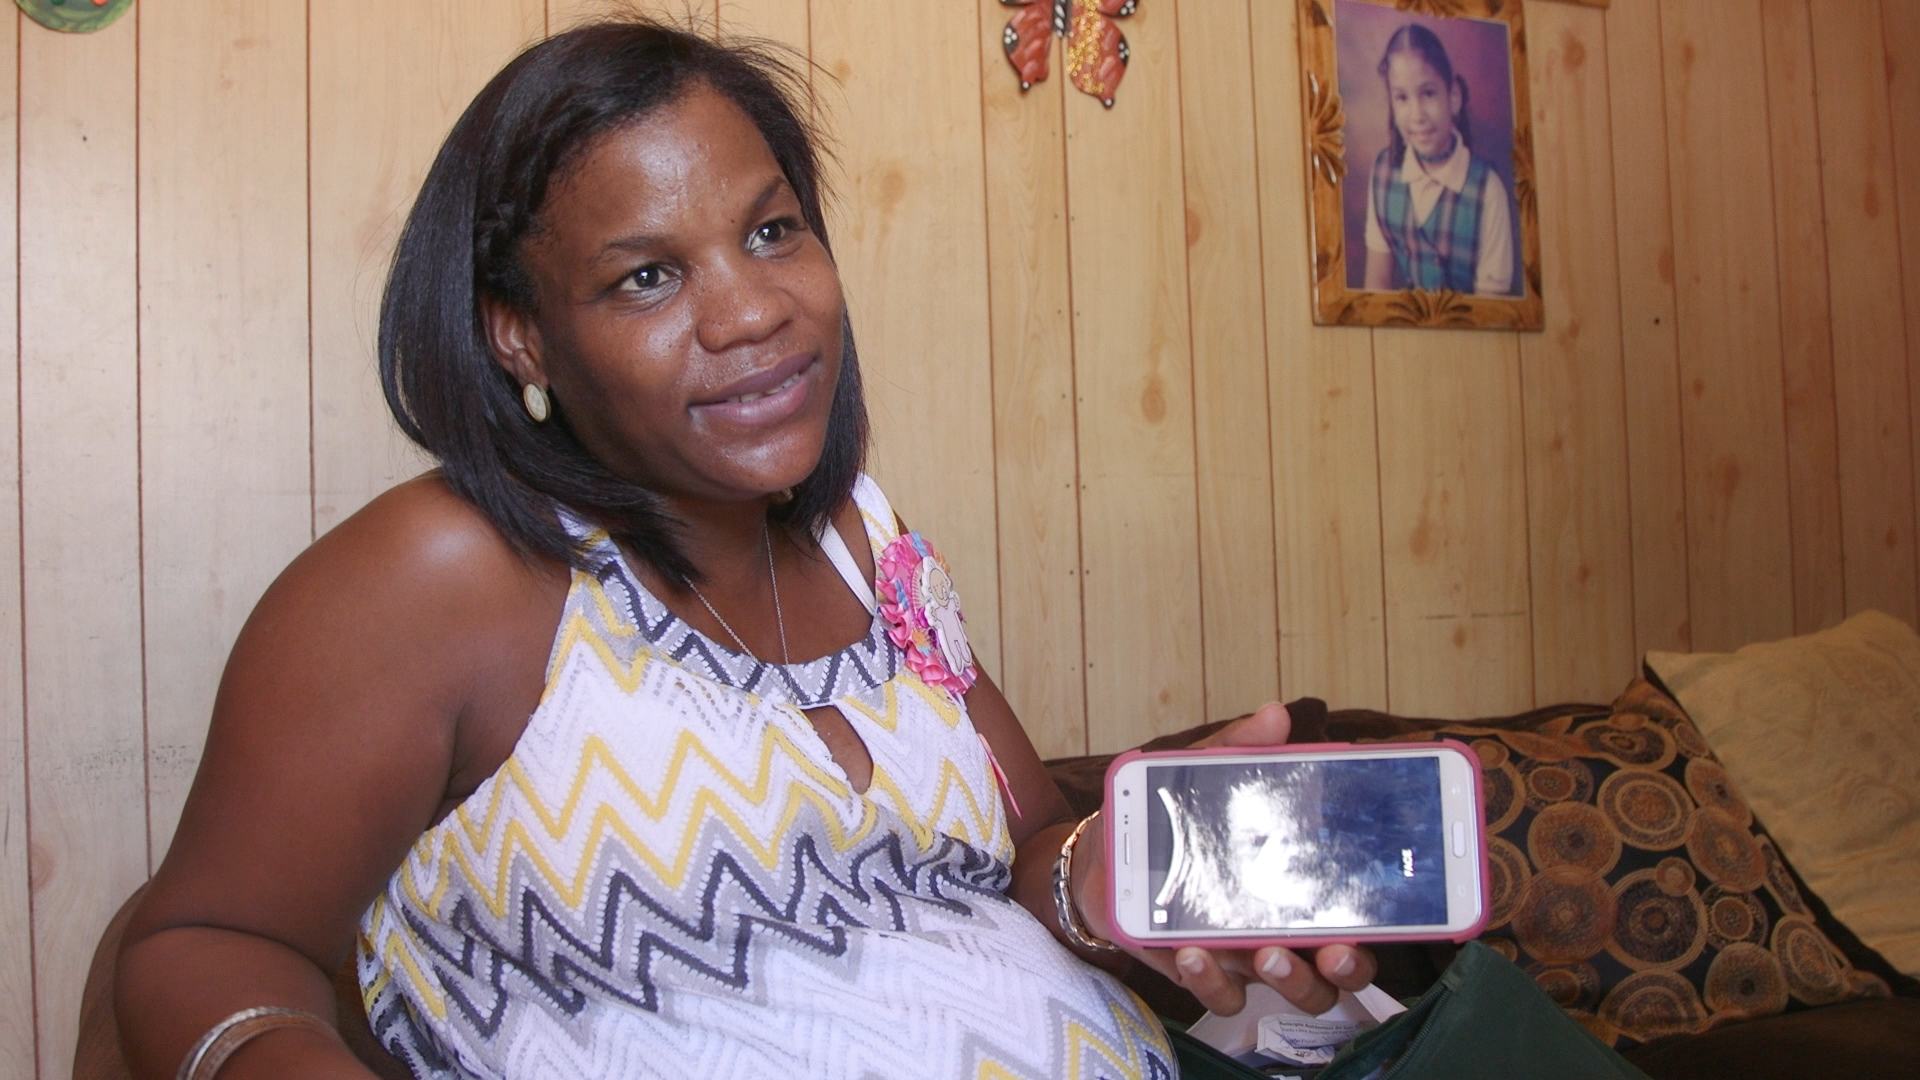 A woman named Adriana shows an image of her expected child, but she's overwhelmed with worries about Zika. Click on the photo to see the whole story. (Photo via GroundTruth Films)